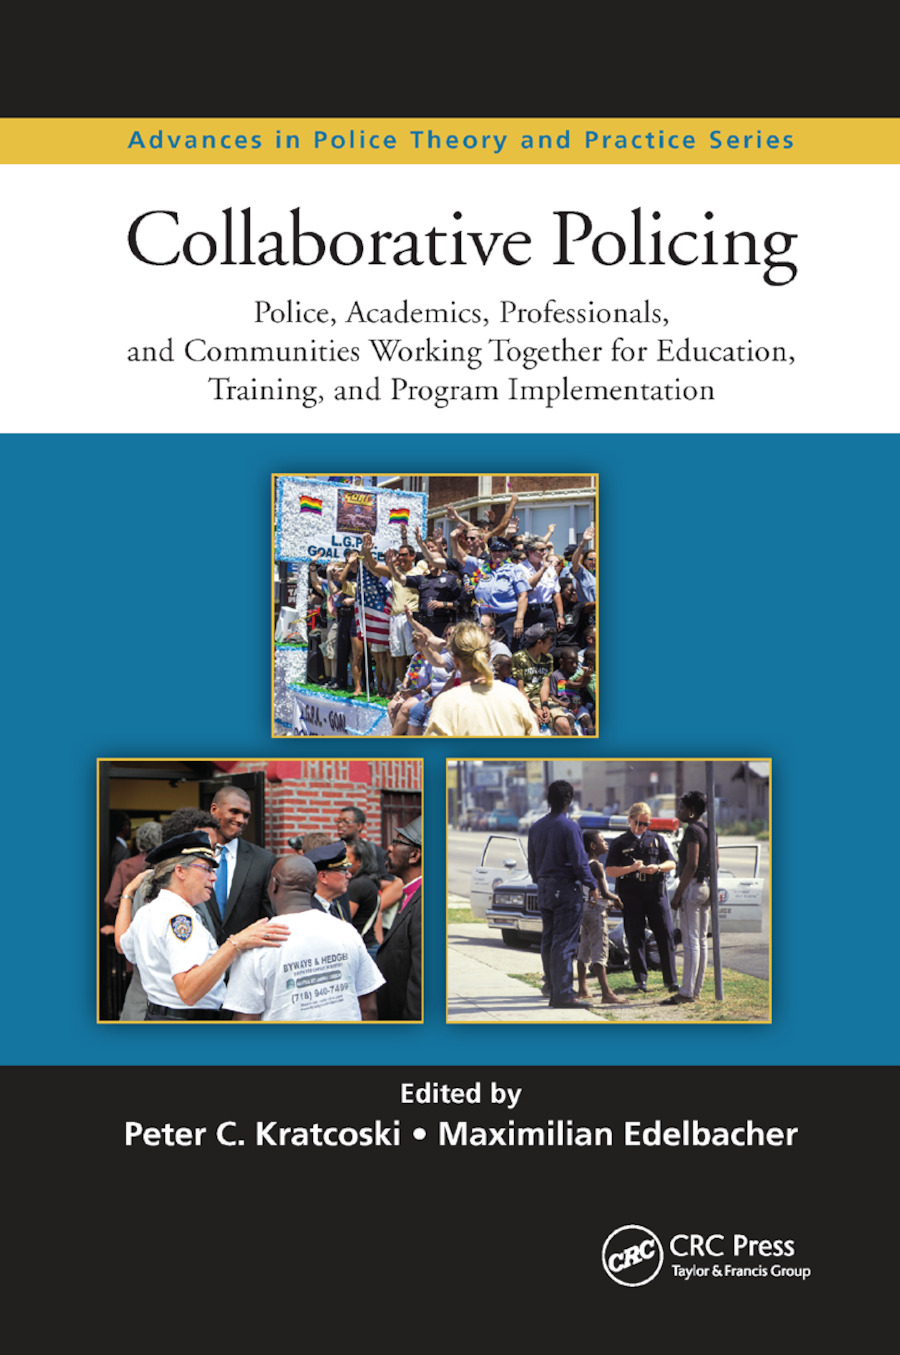 Collaborative Policing: Police, Academics, Professionals, and Communities Working Together for Education, Training, and Program Implementation book cover